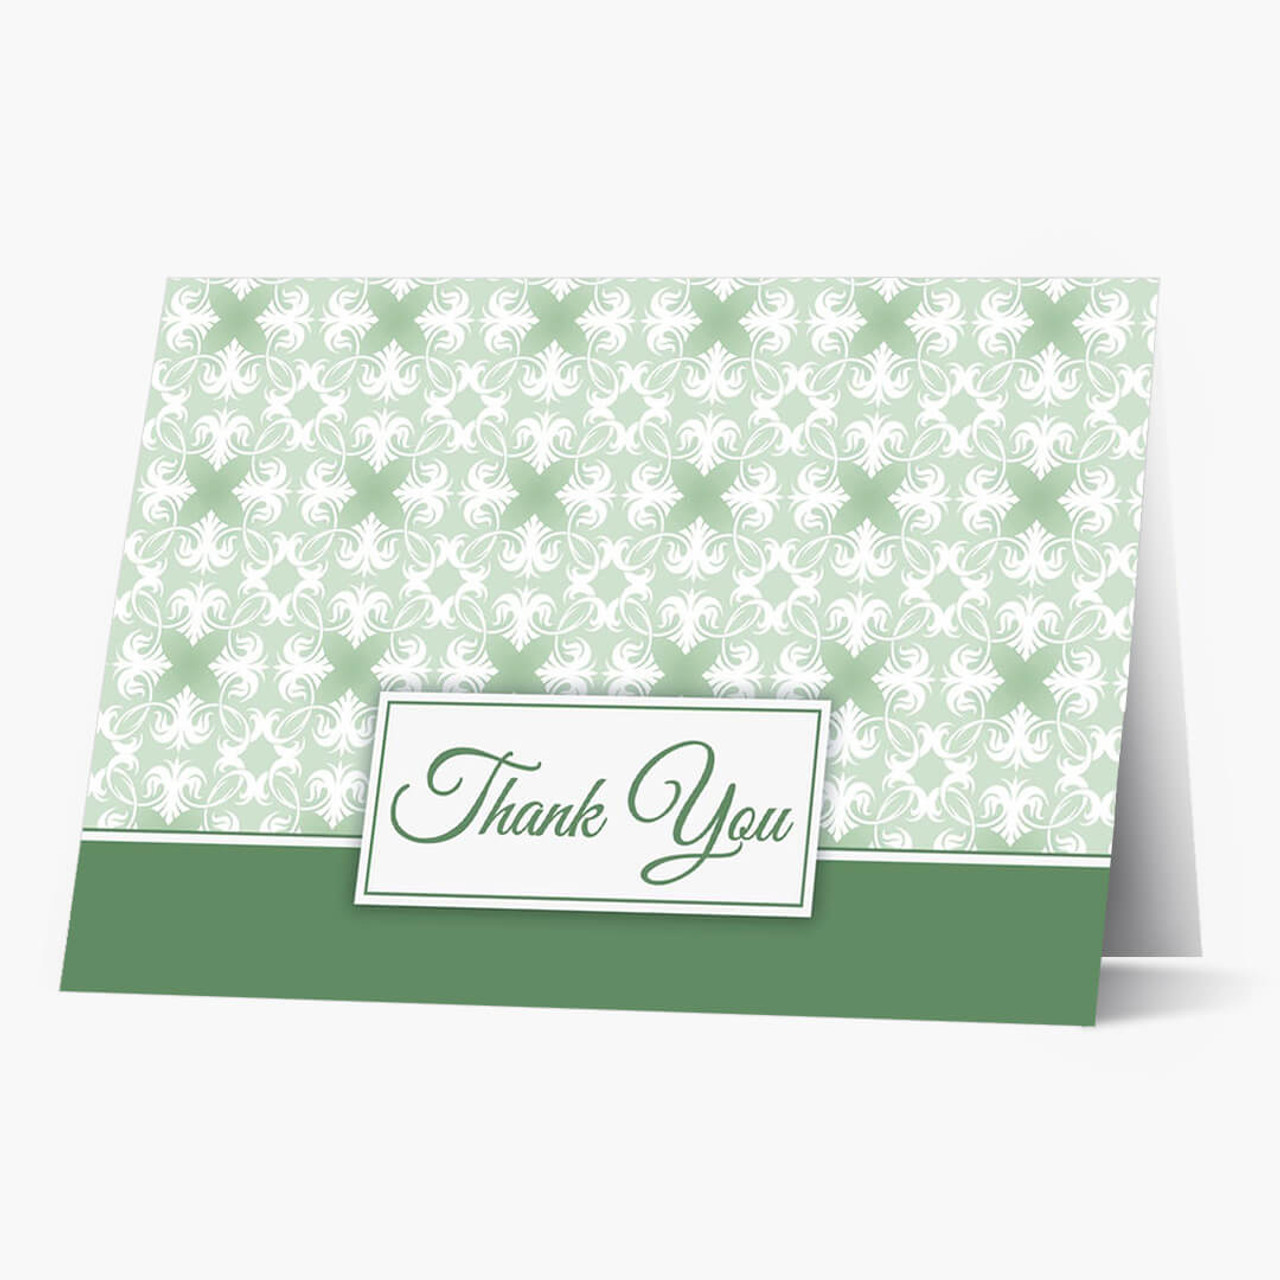 Simply Stated Thank You Card